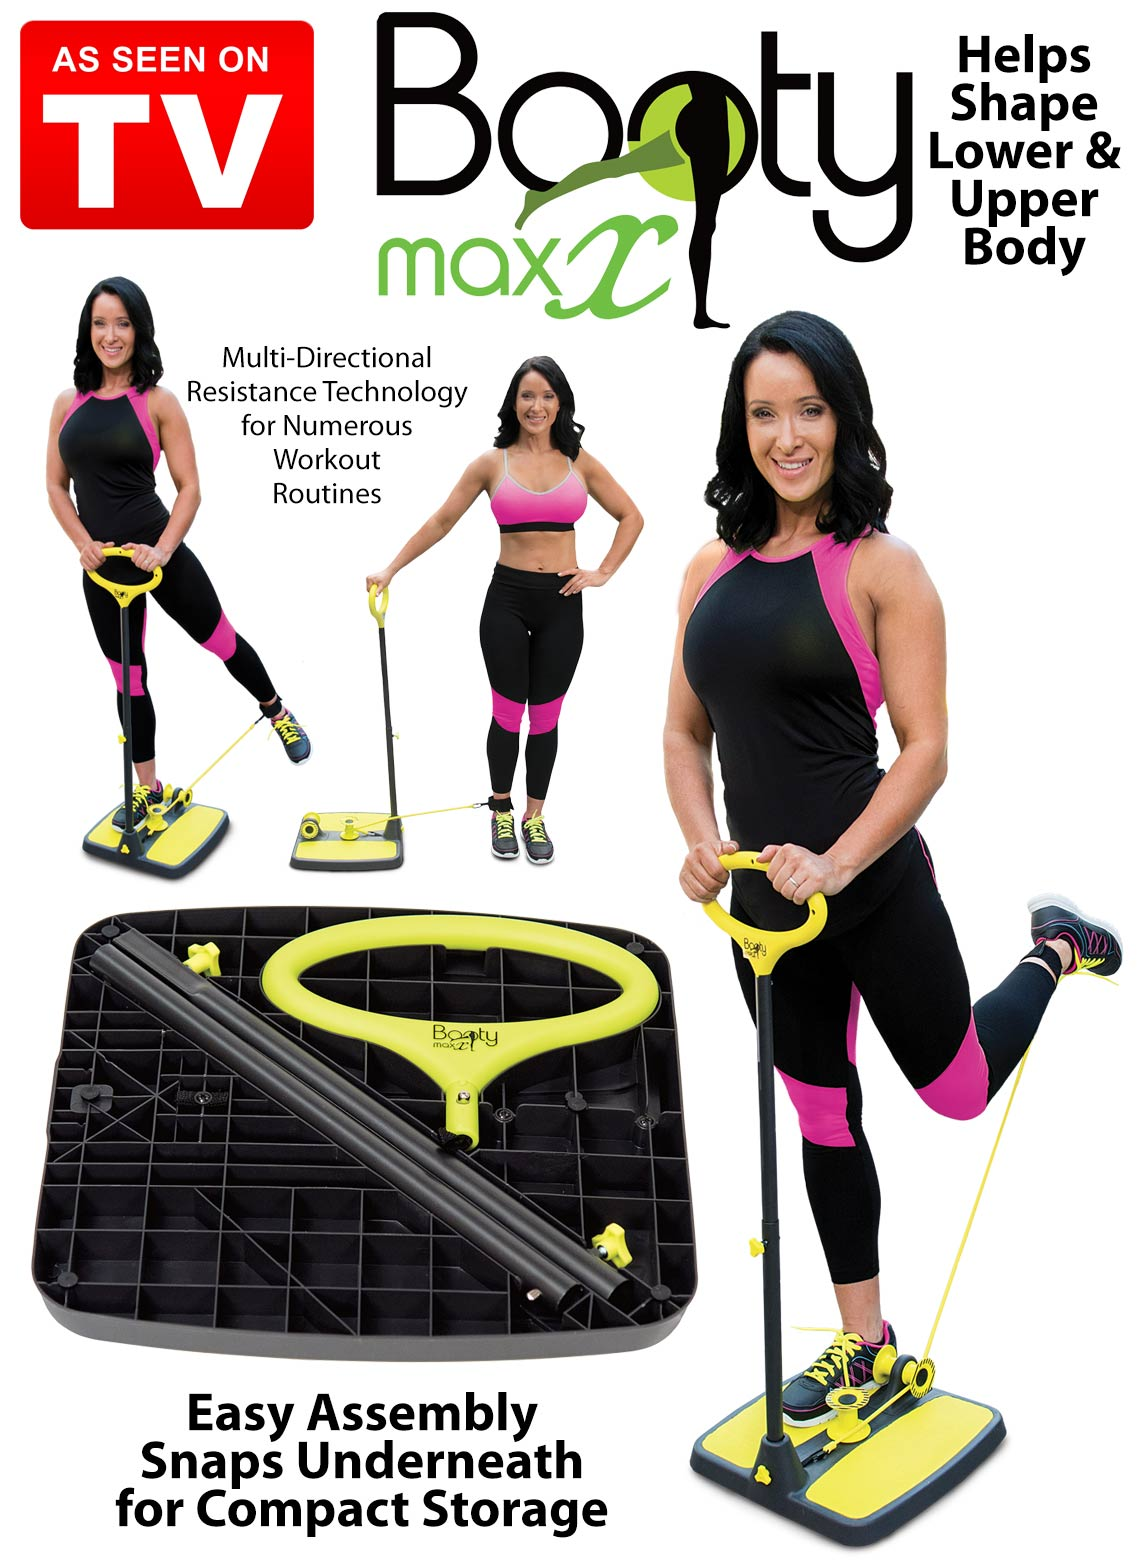 Booty Maxx Highly Targeted Muscle Toning Resistance Moves Multi-Directional Resistance Beach Booty-Made Shapes Lifts Your Booty california exotic booty call booty gliders розовая анальная пробка с виброяйцом